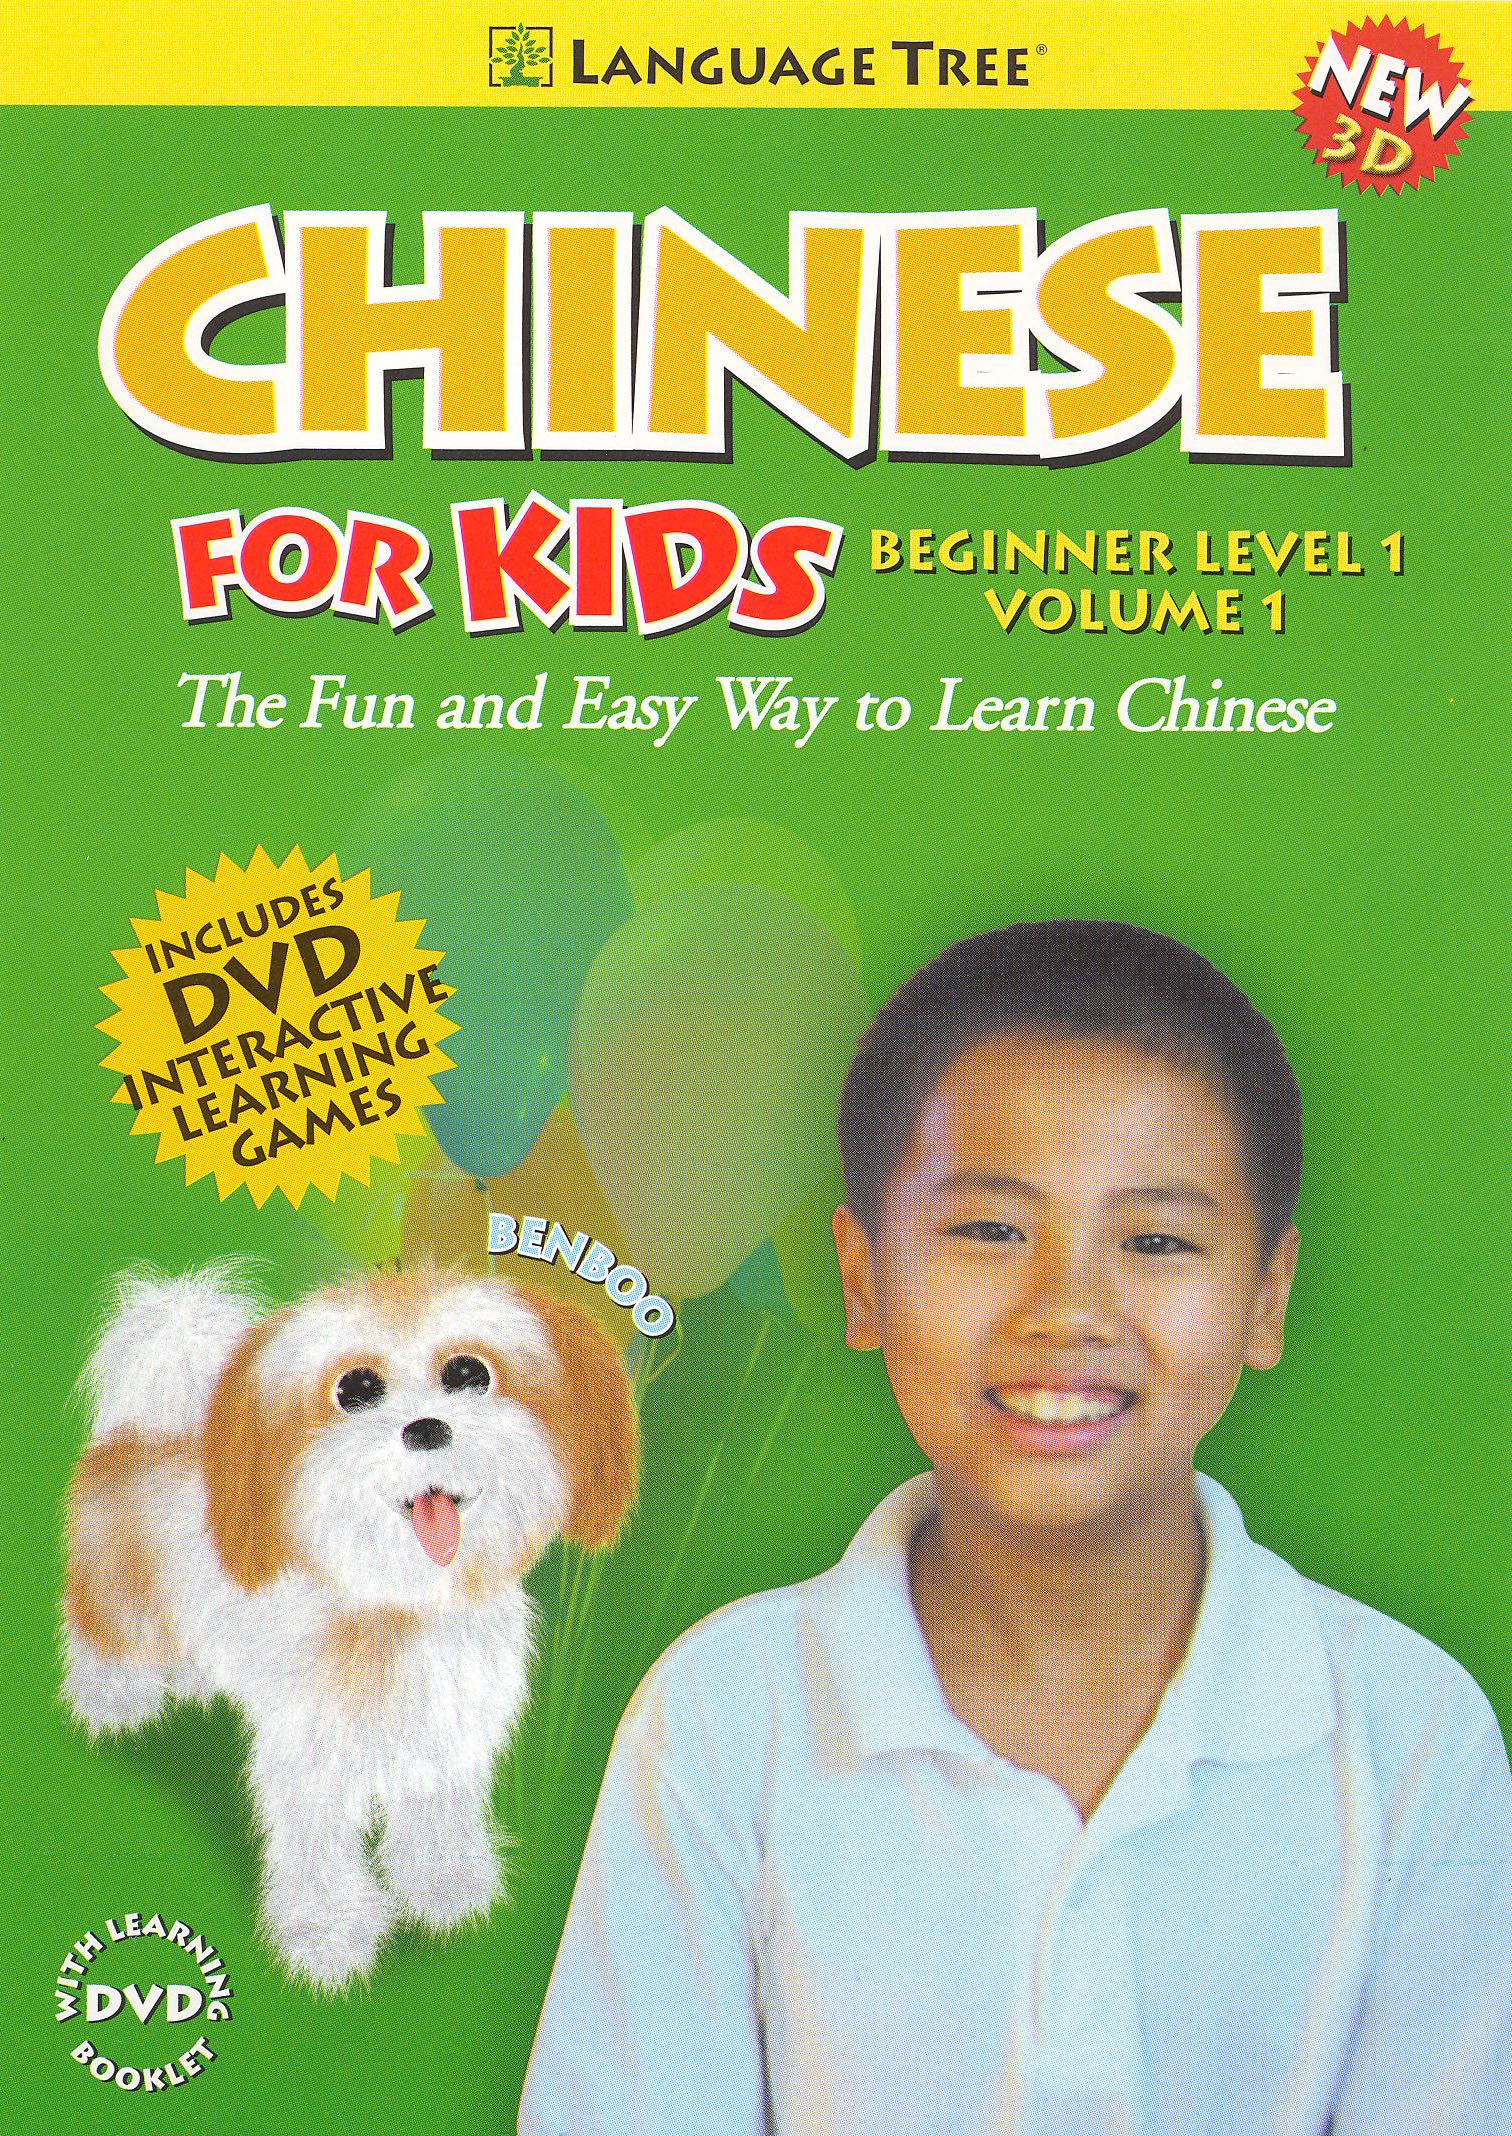 Chinese for Kids, Vol. 1